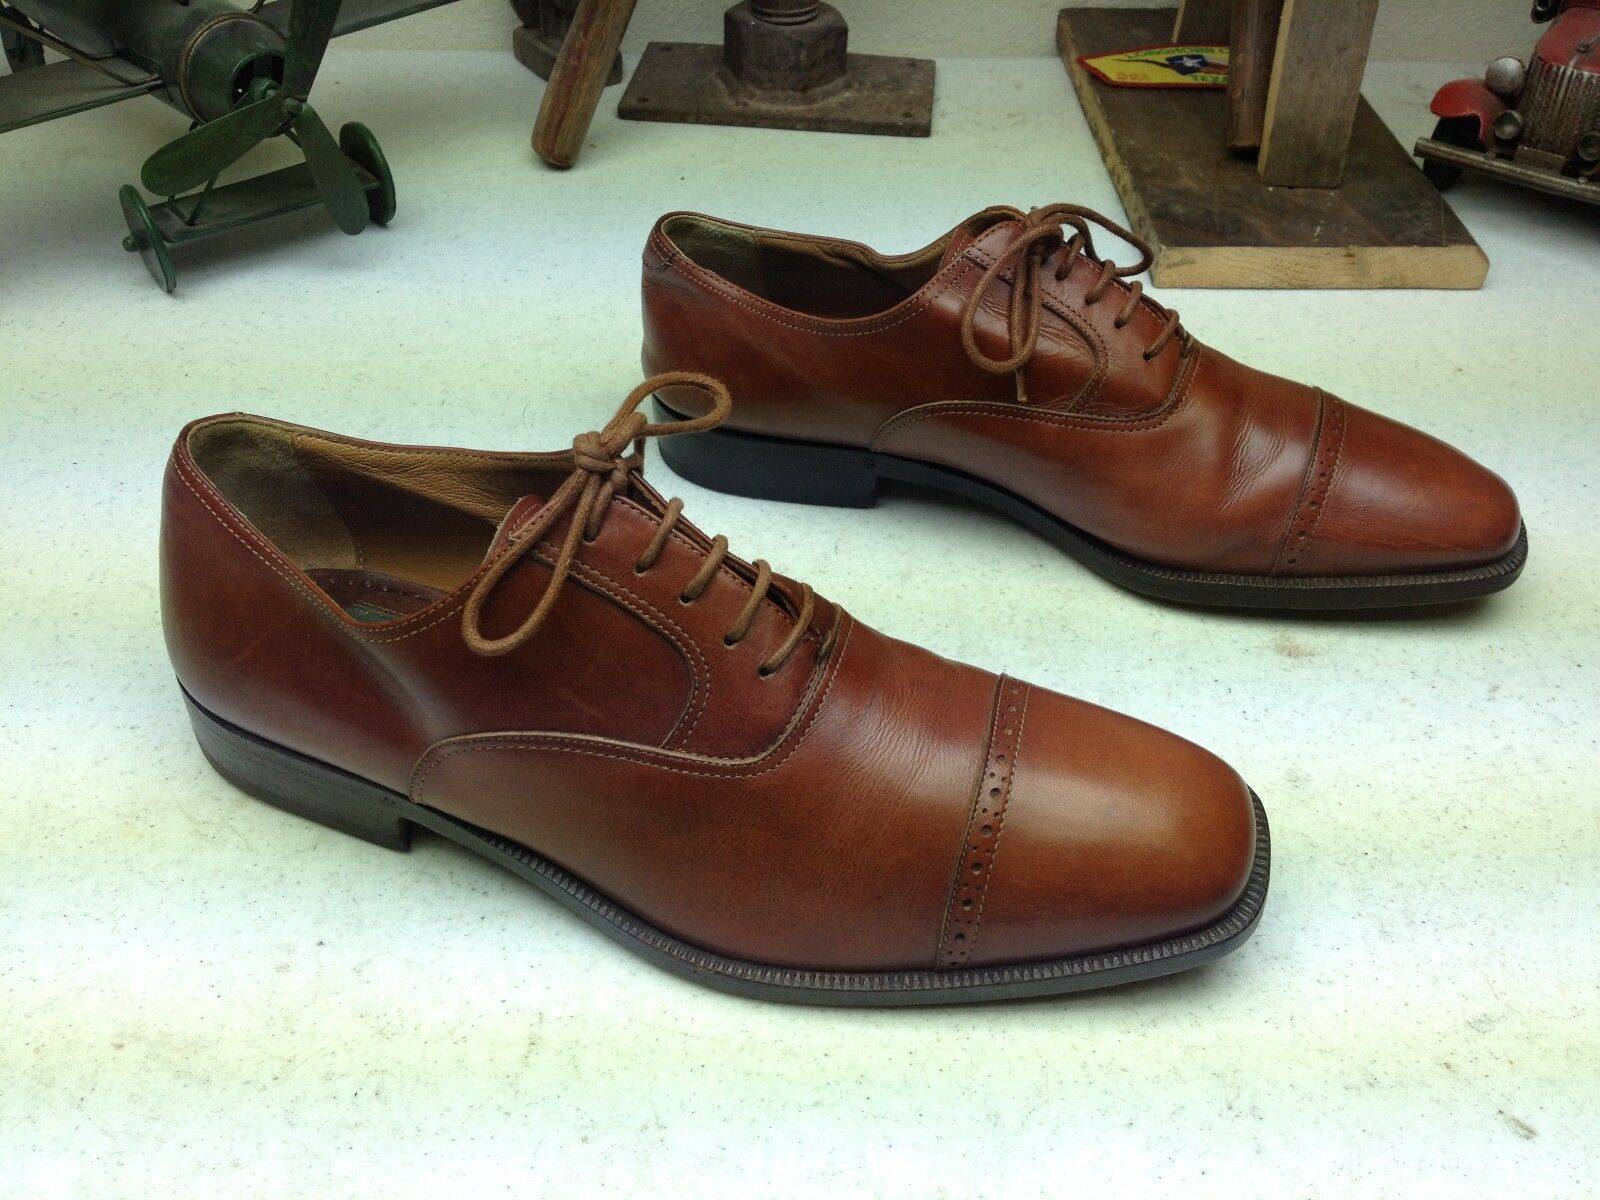 CALDERONI FORMAL BROWN LEATHER LACE UP BUSINESS DRESS FORMAL CALDERONI SHOES SIZE 41.5 369575